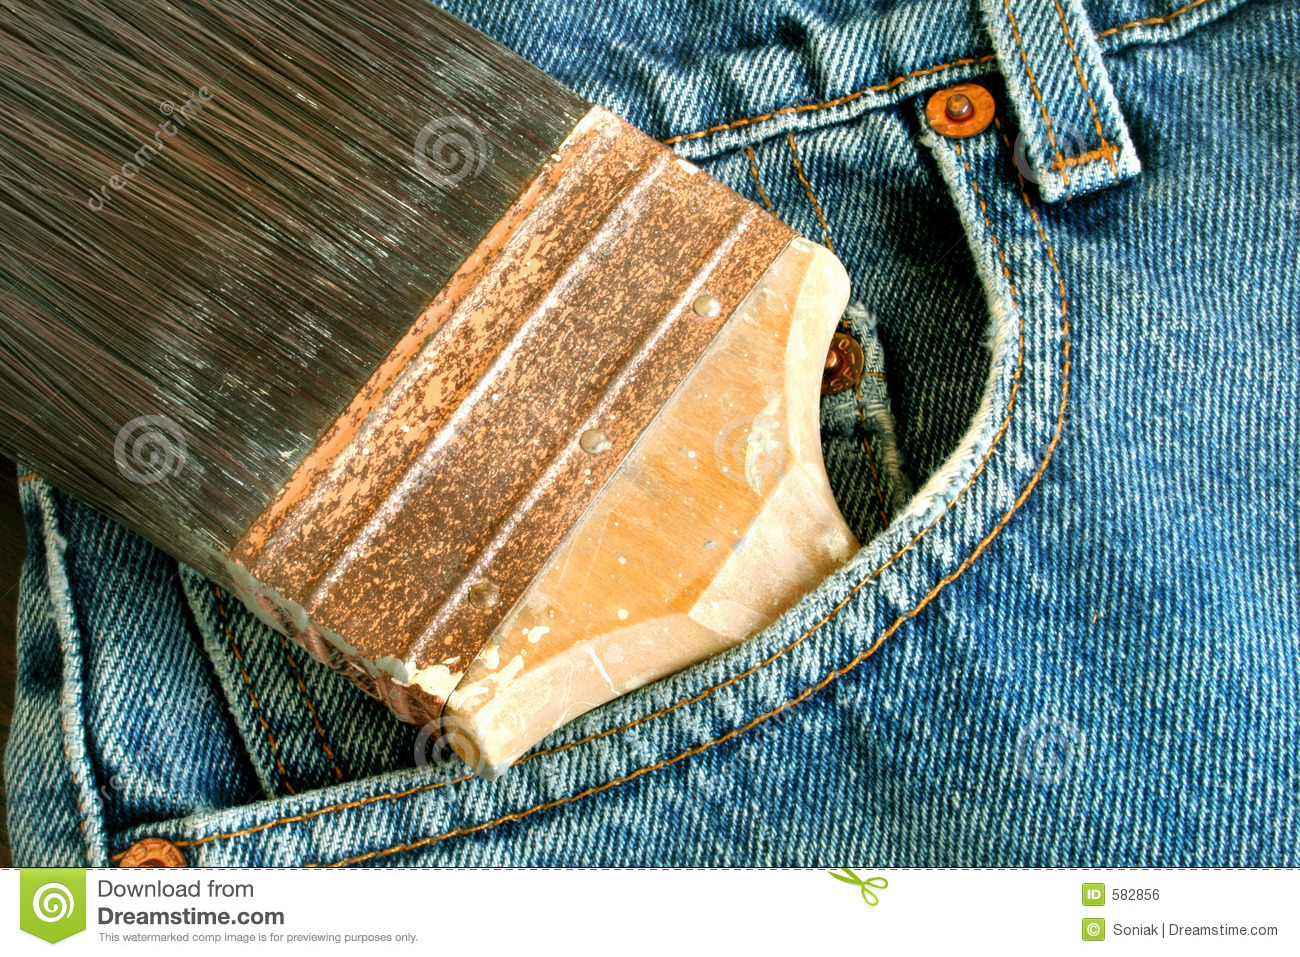 Paint brush and bluejeans